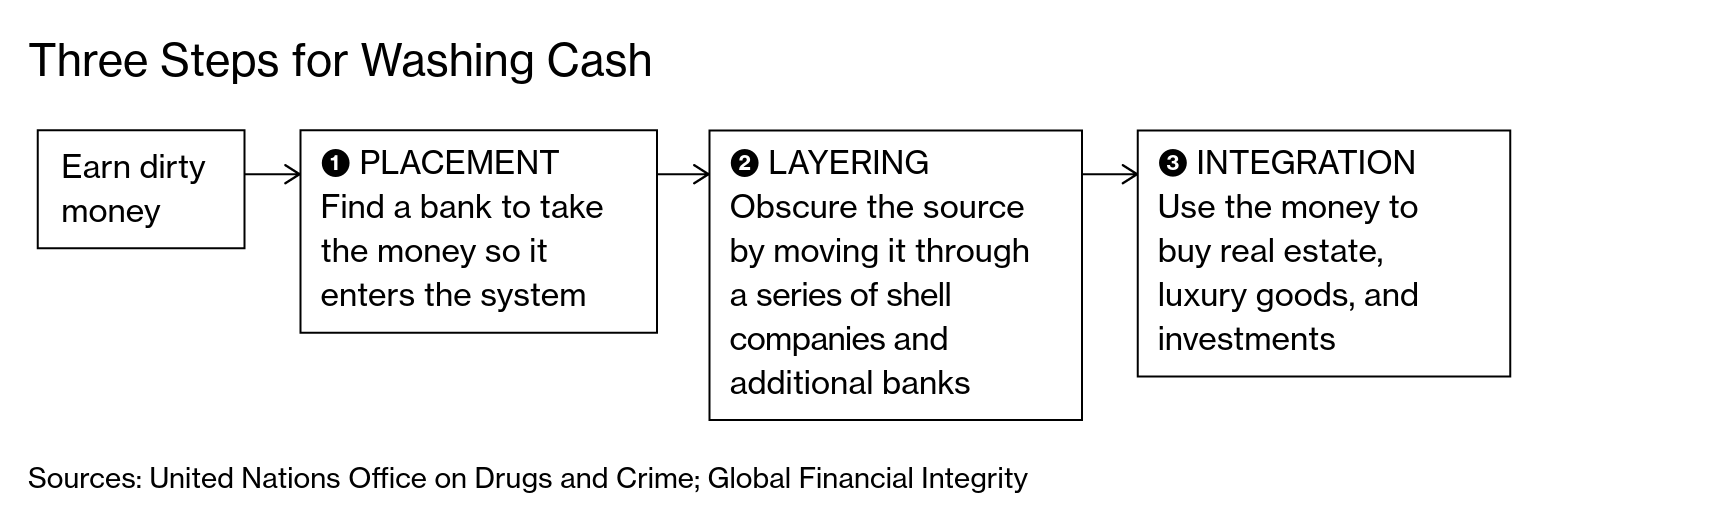 Cash Pool Commerzbank Huge Pools Of Dirty Money Are Europe S Worst Kept Banking Secret